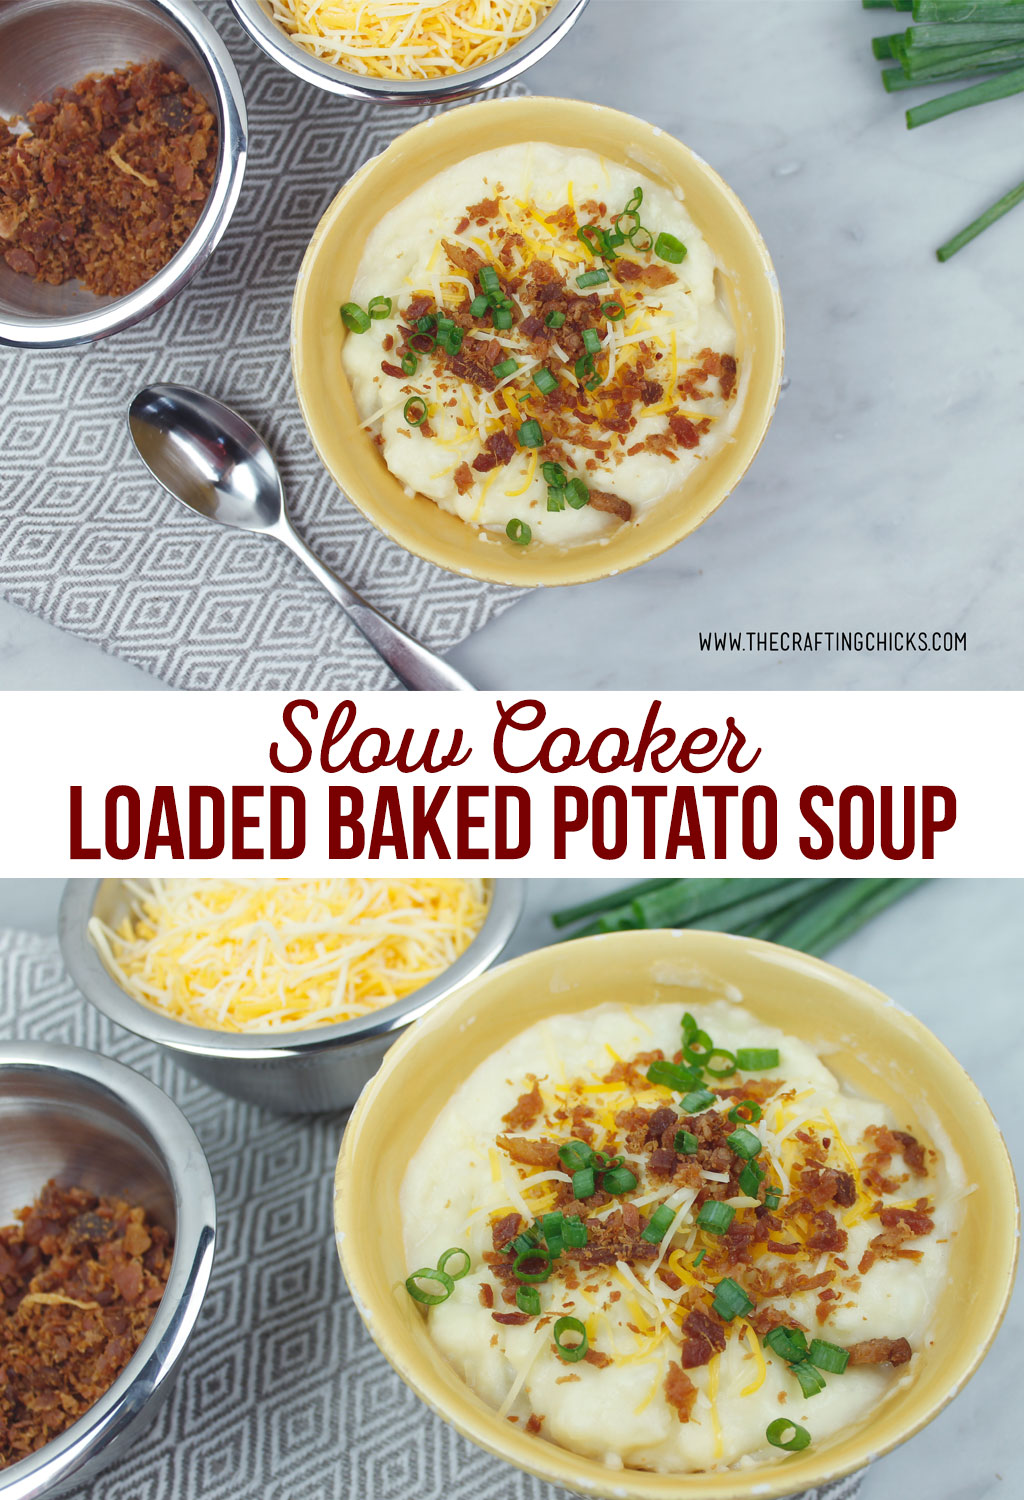 Slow Cooker Baked Potato soup is perfect for those days where you want to toss some thing in the crockpot and not worry about it later.